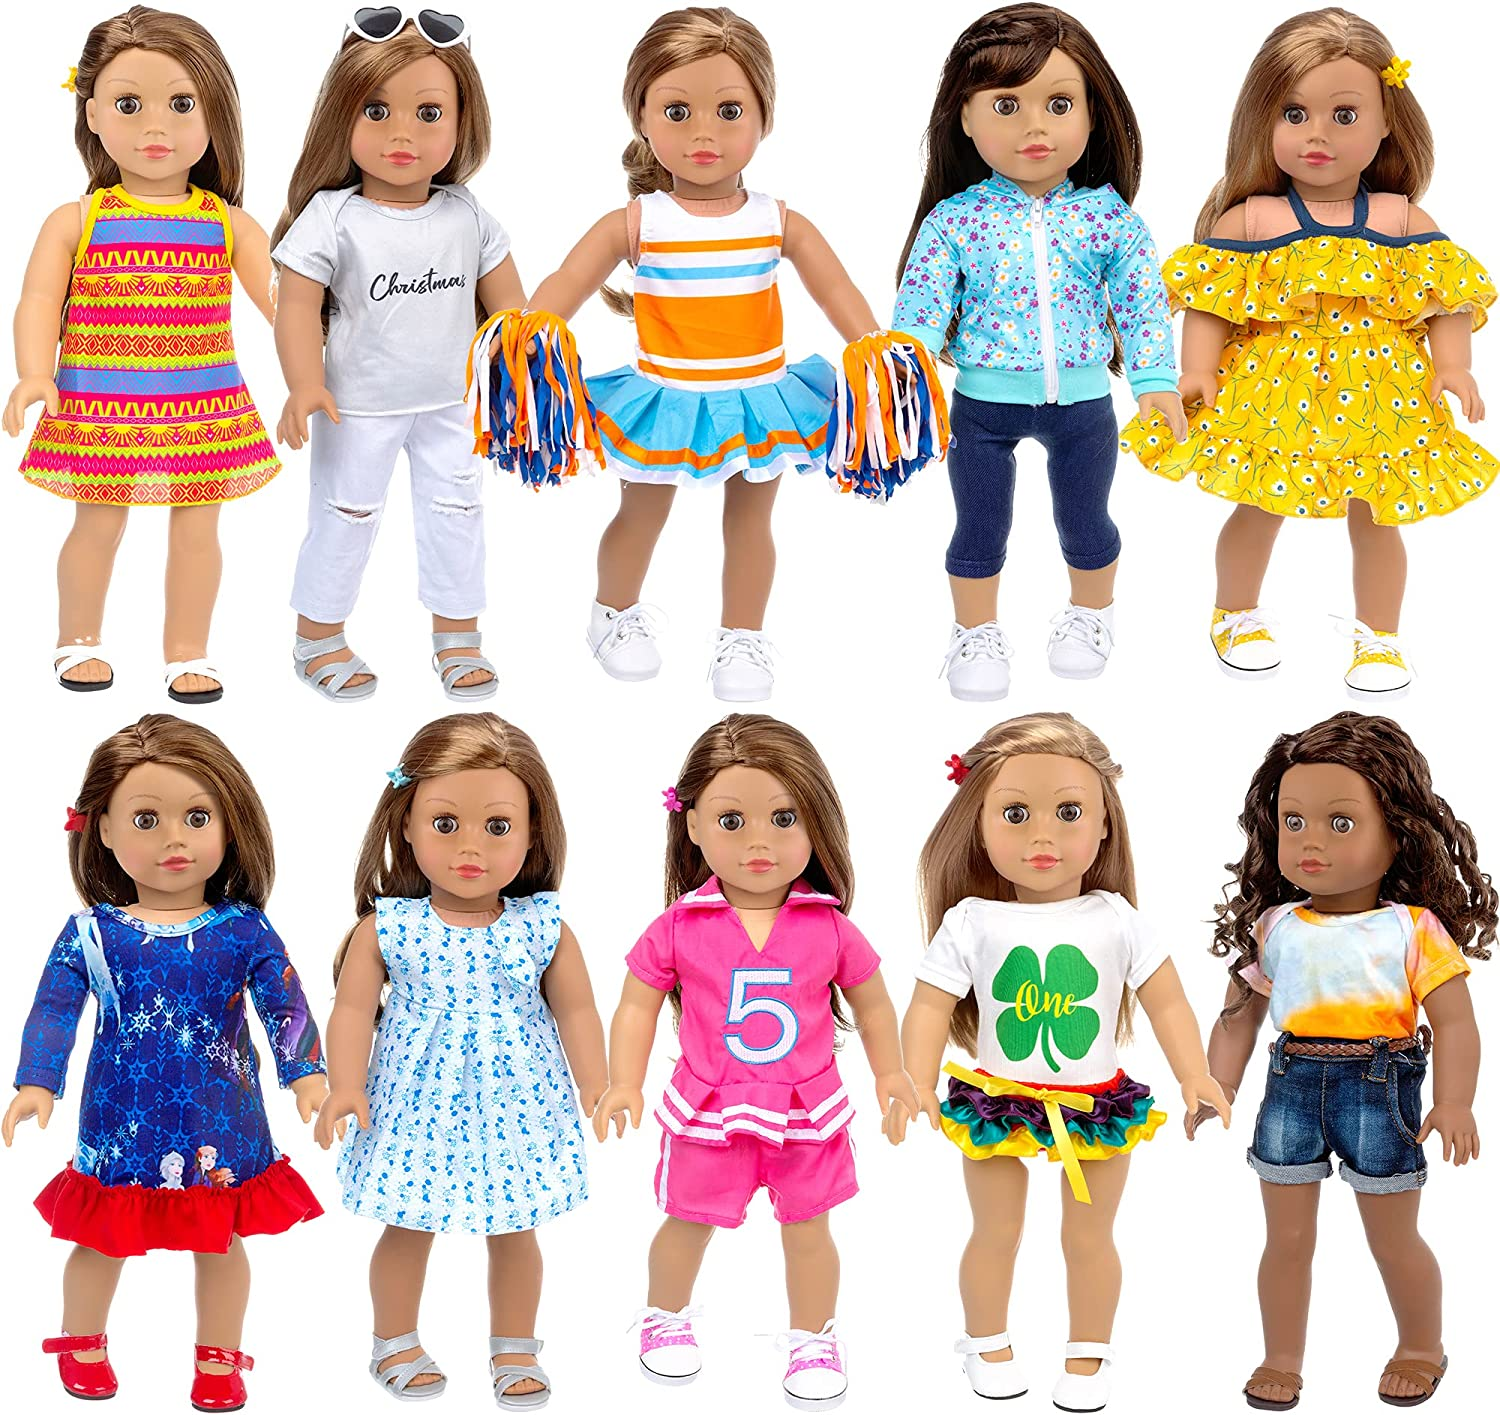 Ecore Fun Luxury 10 Sets American 18 Reservation and Doll Accessories Clothes Inch